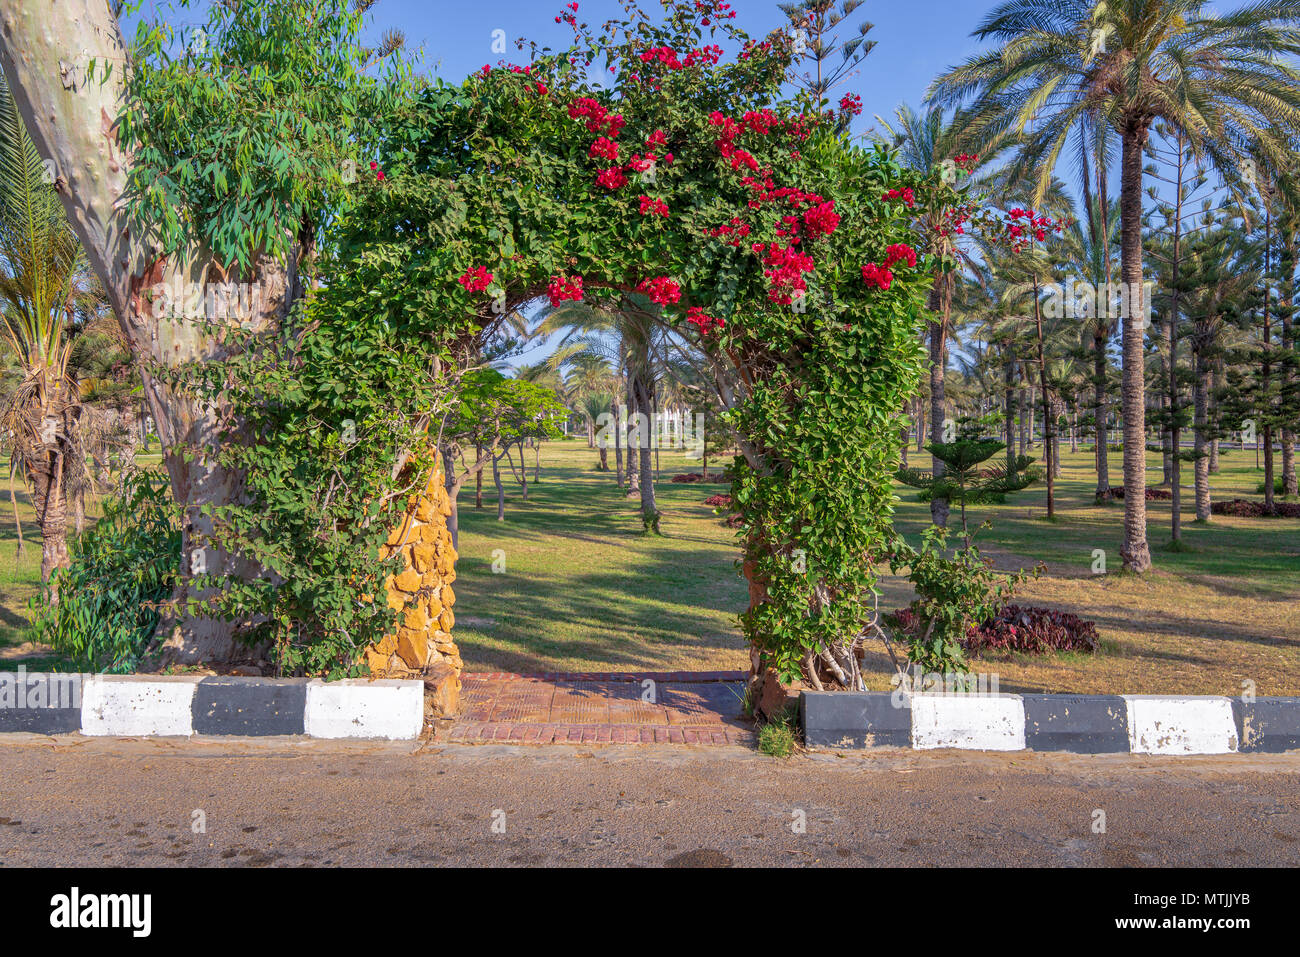 Natural rose garden arch covered with climbing plants at Montazah public park, Alexandria, Egypt - Stock Image